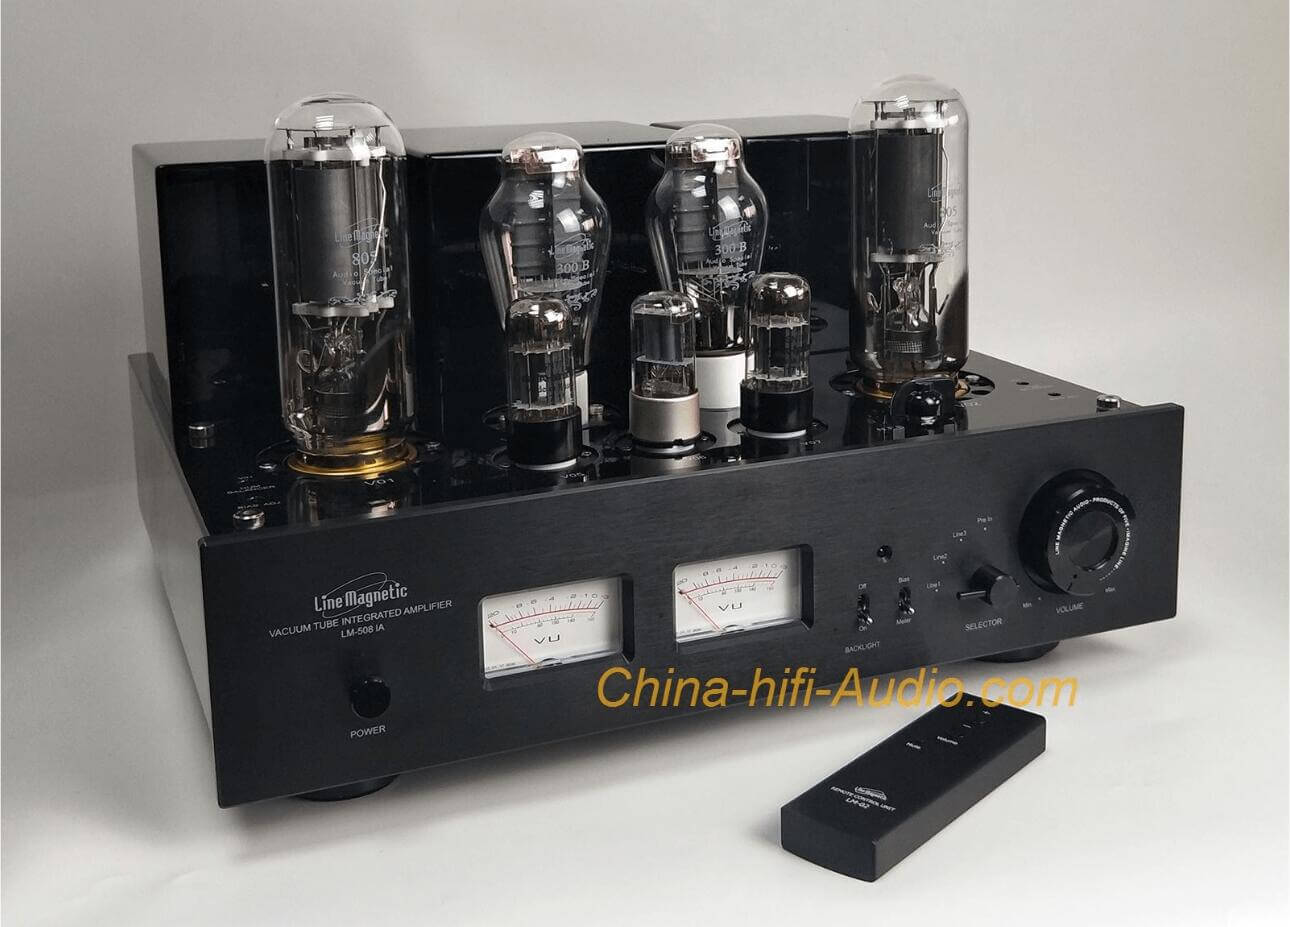 China-hifi-Audio Is Changing the World of Audio Technology with Its Recently Introduced Audiophile Tube Amplifiers